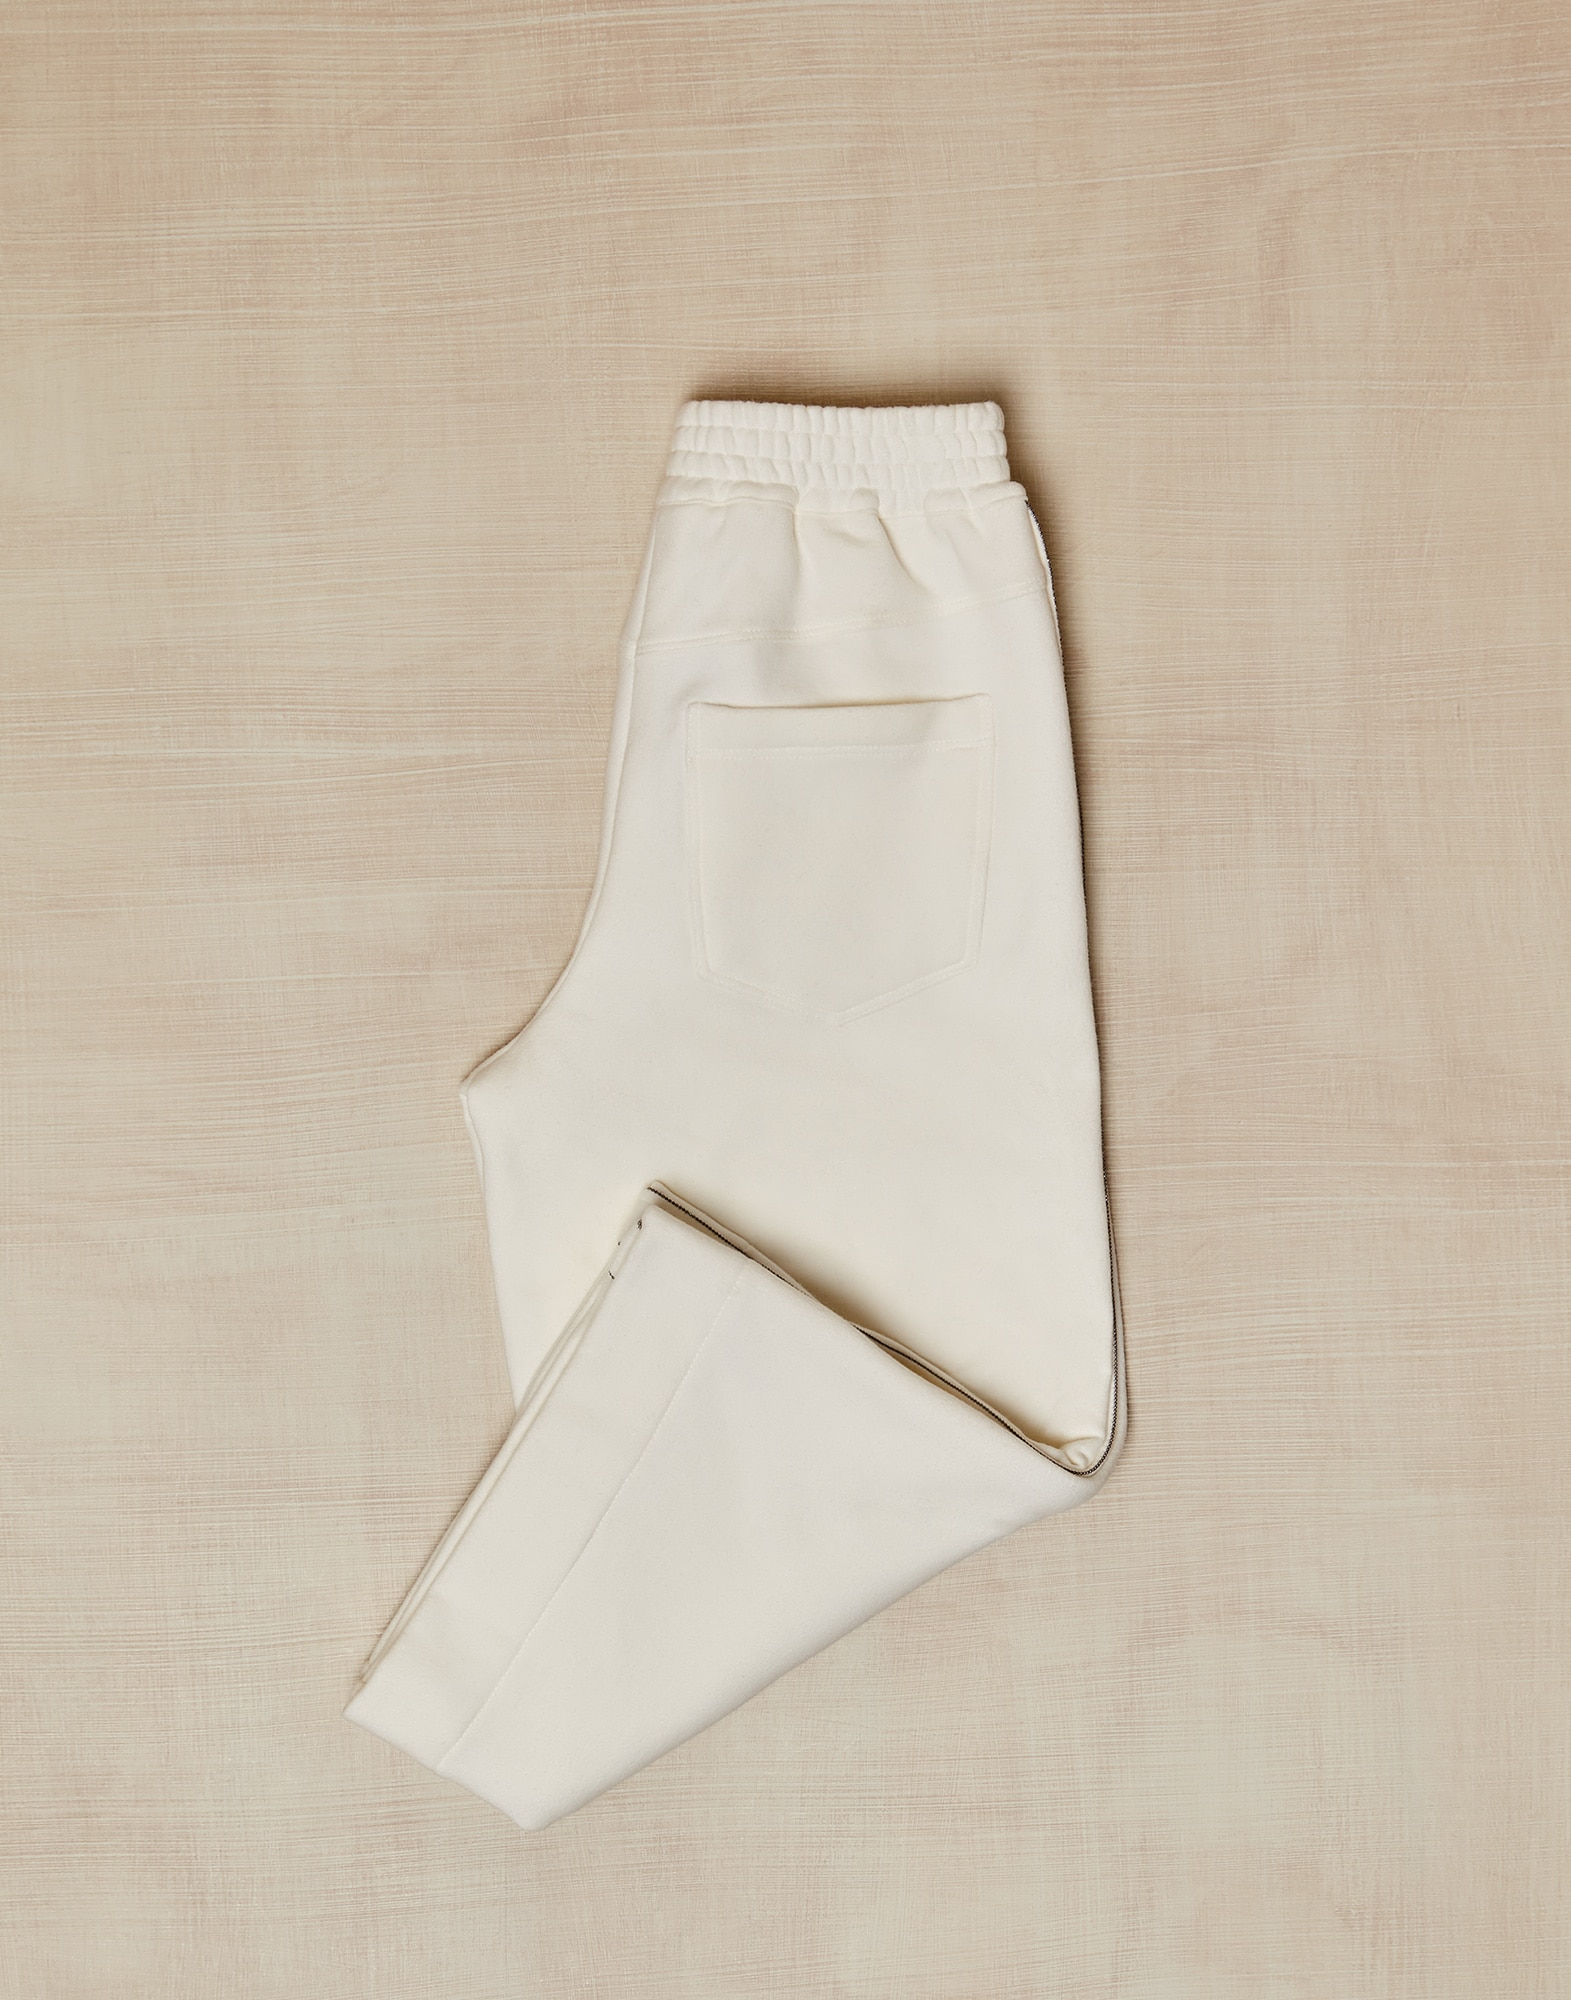 Trousers Off-White Girl 1 - Brunello Cucinelli